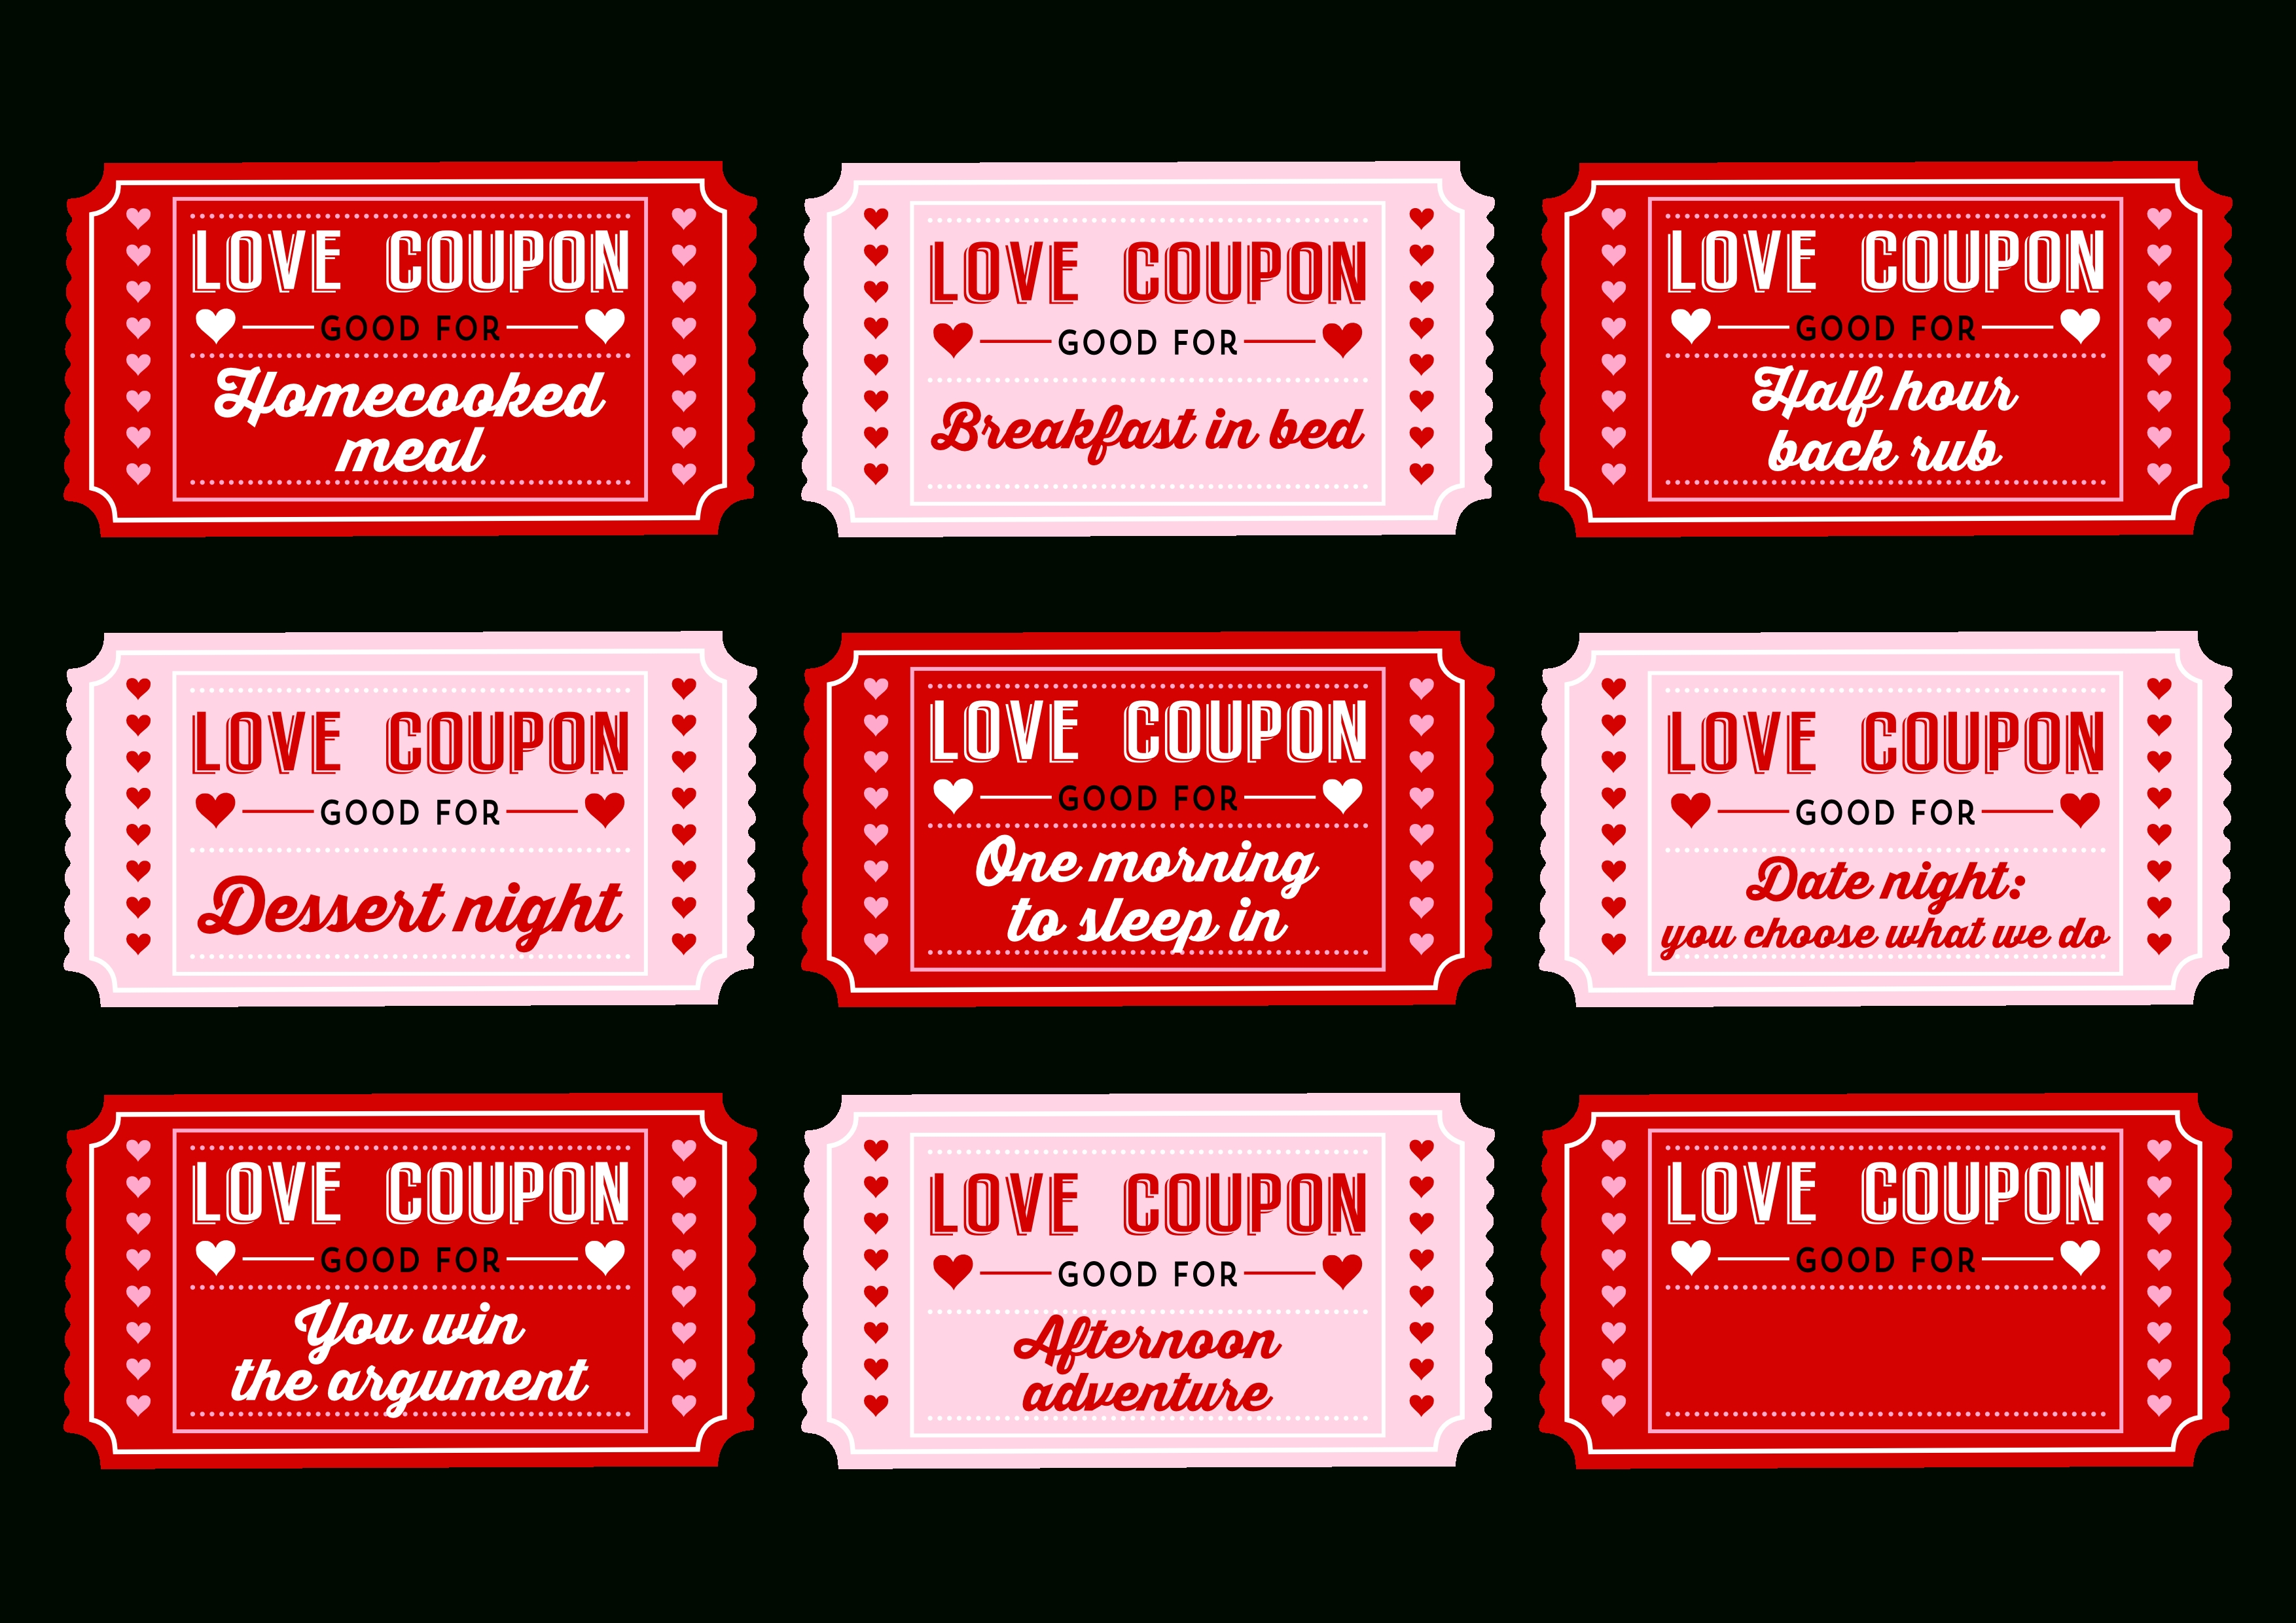 10 Stylish Love Coupon Ideas For Her free printable love coupons for couples on valentines day catch 2 2021